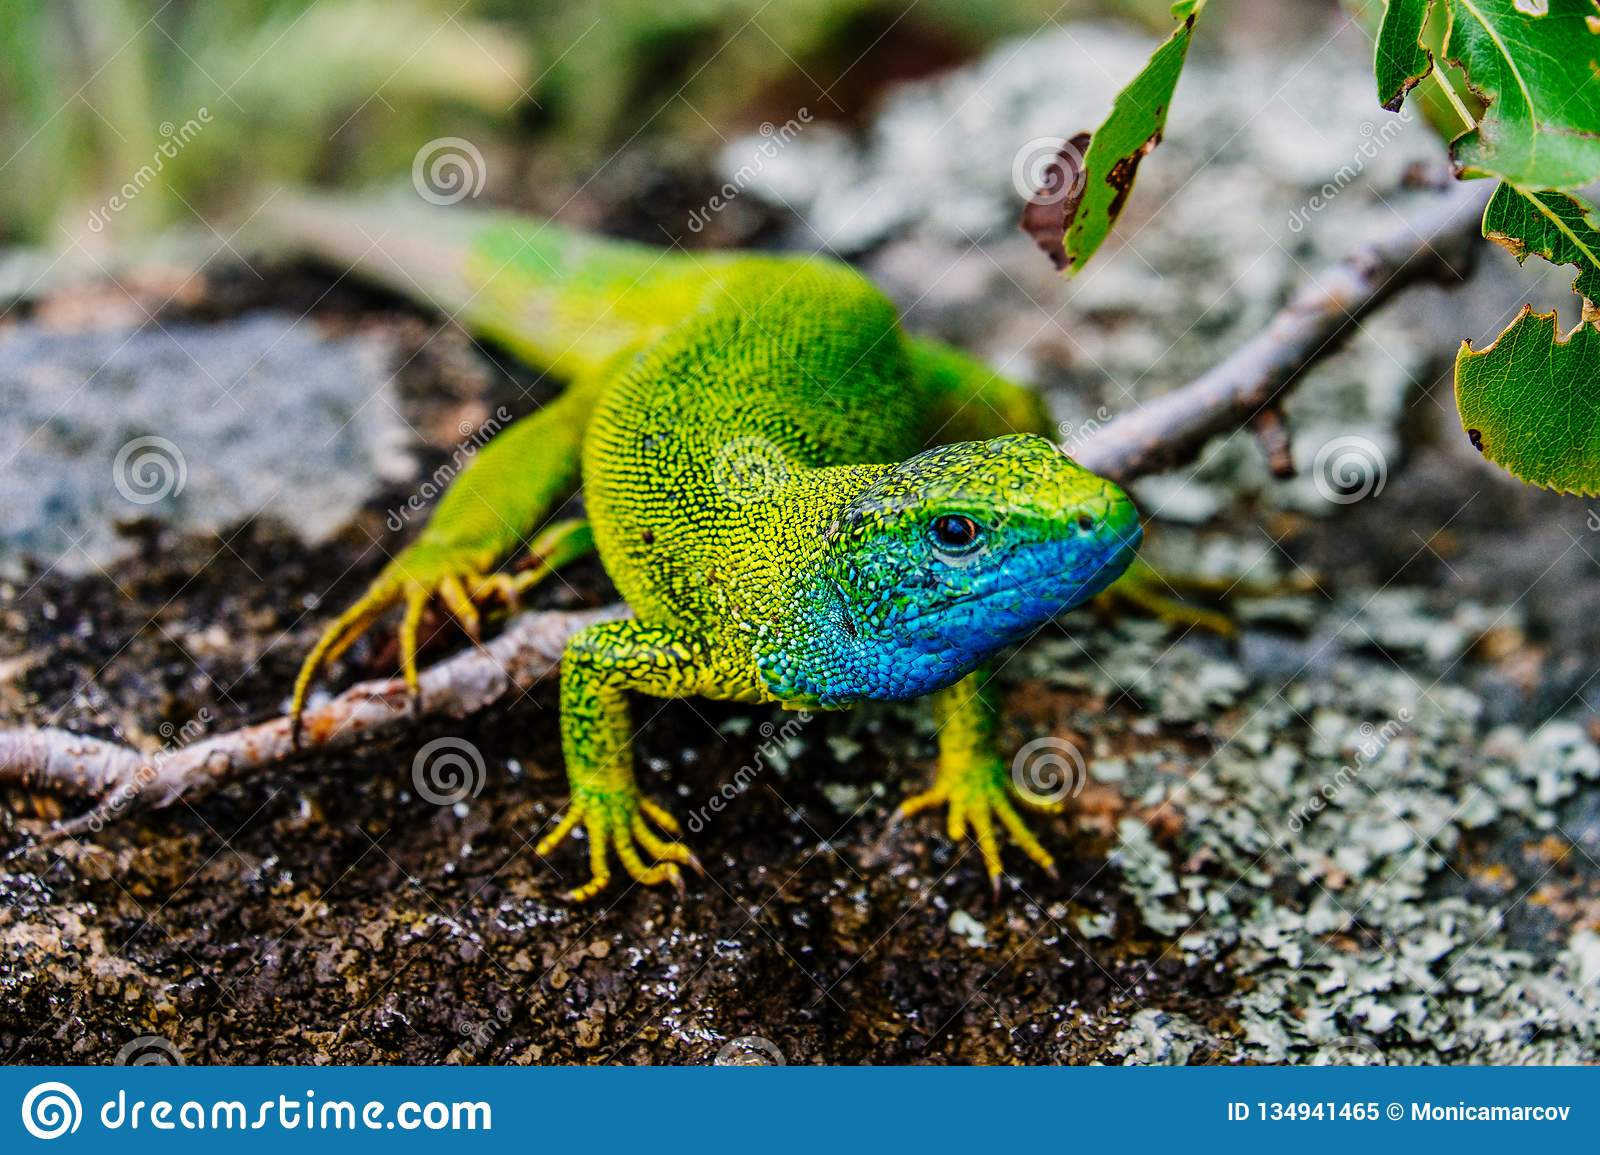 European green lizard Guster caught on a spring day in the mountains